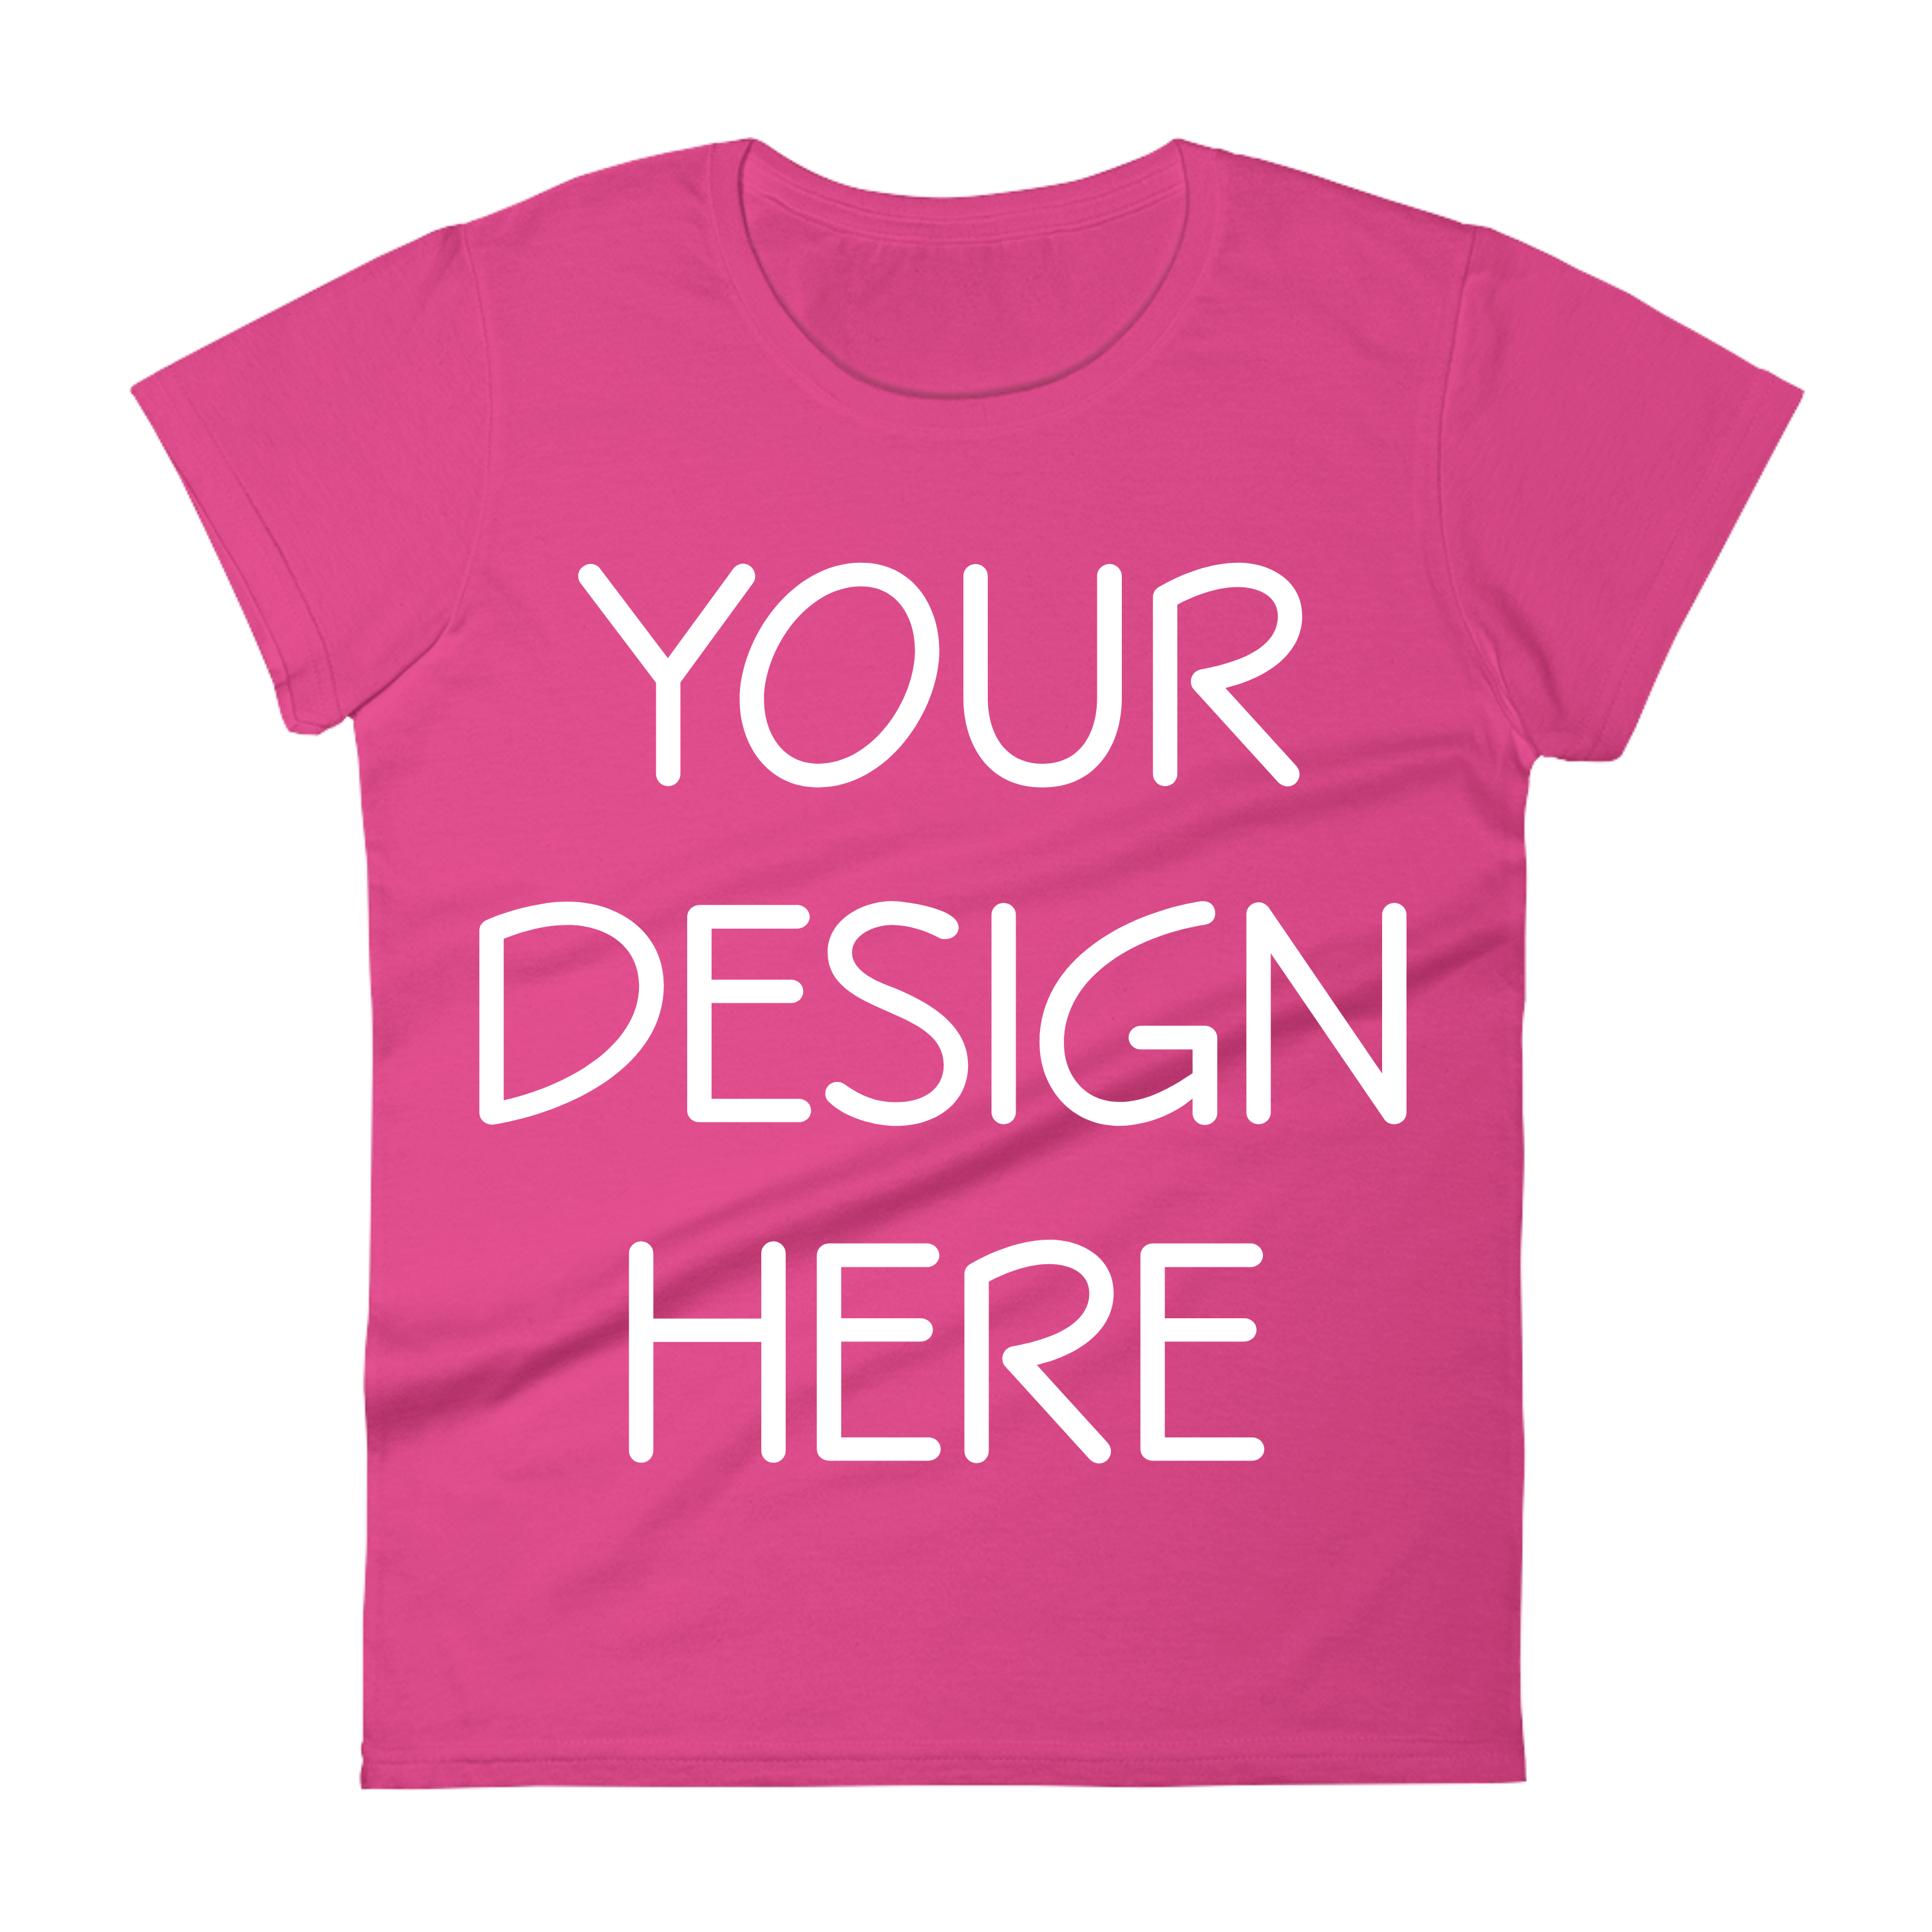 Anvil 880 Ladies Fit T-Shirt Mockups - 17 | PNG|3000x3000px example image 9